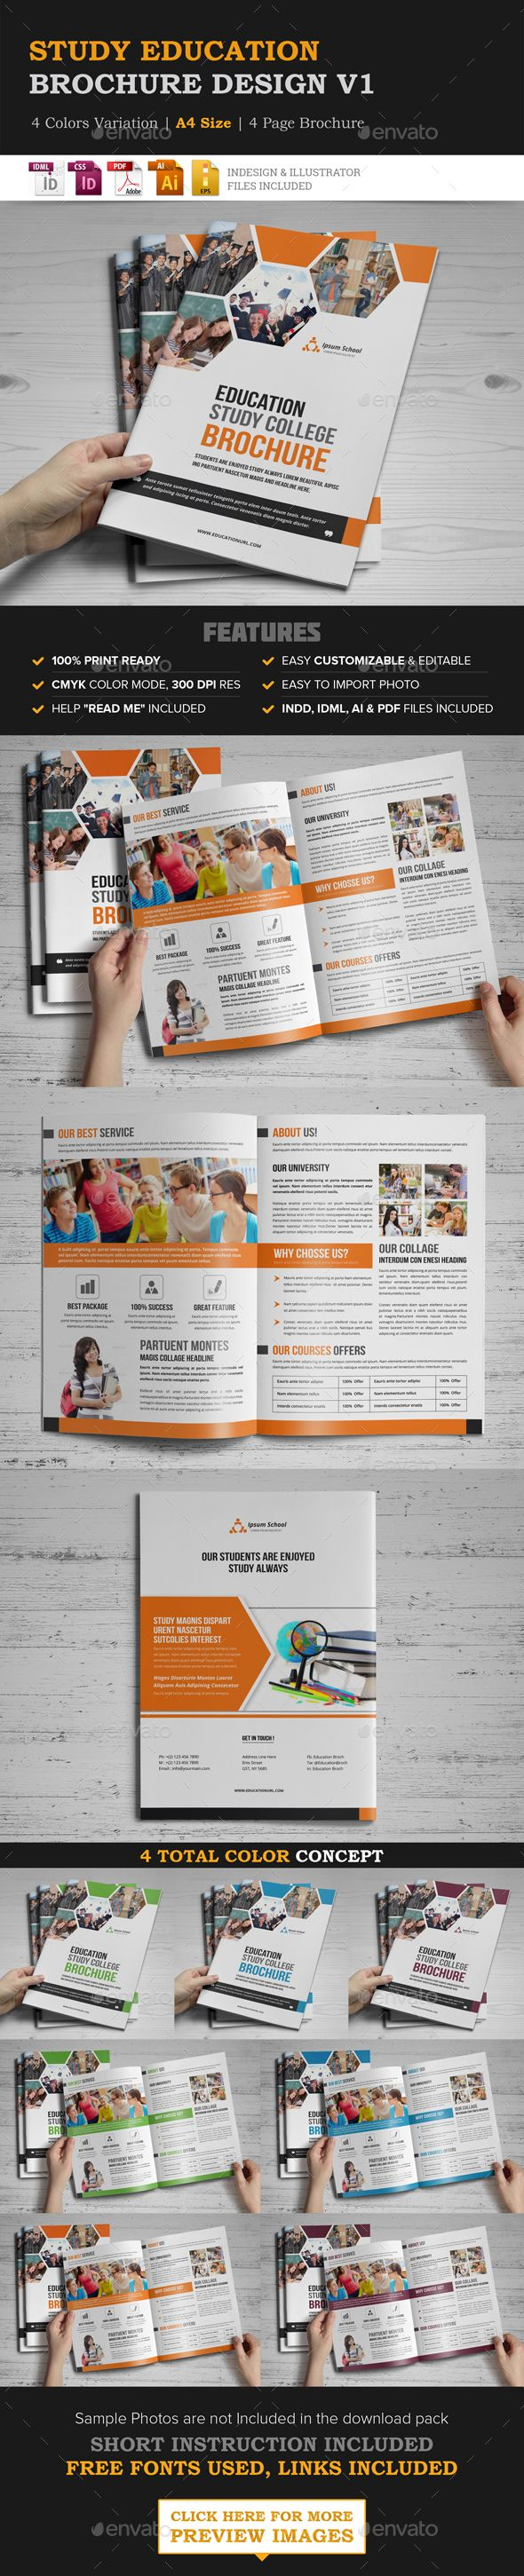 teacher brochure template - best 25 teacher brochure ideas on pinterest back to